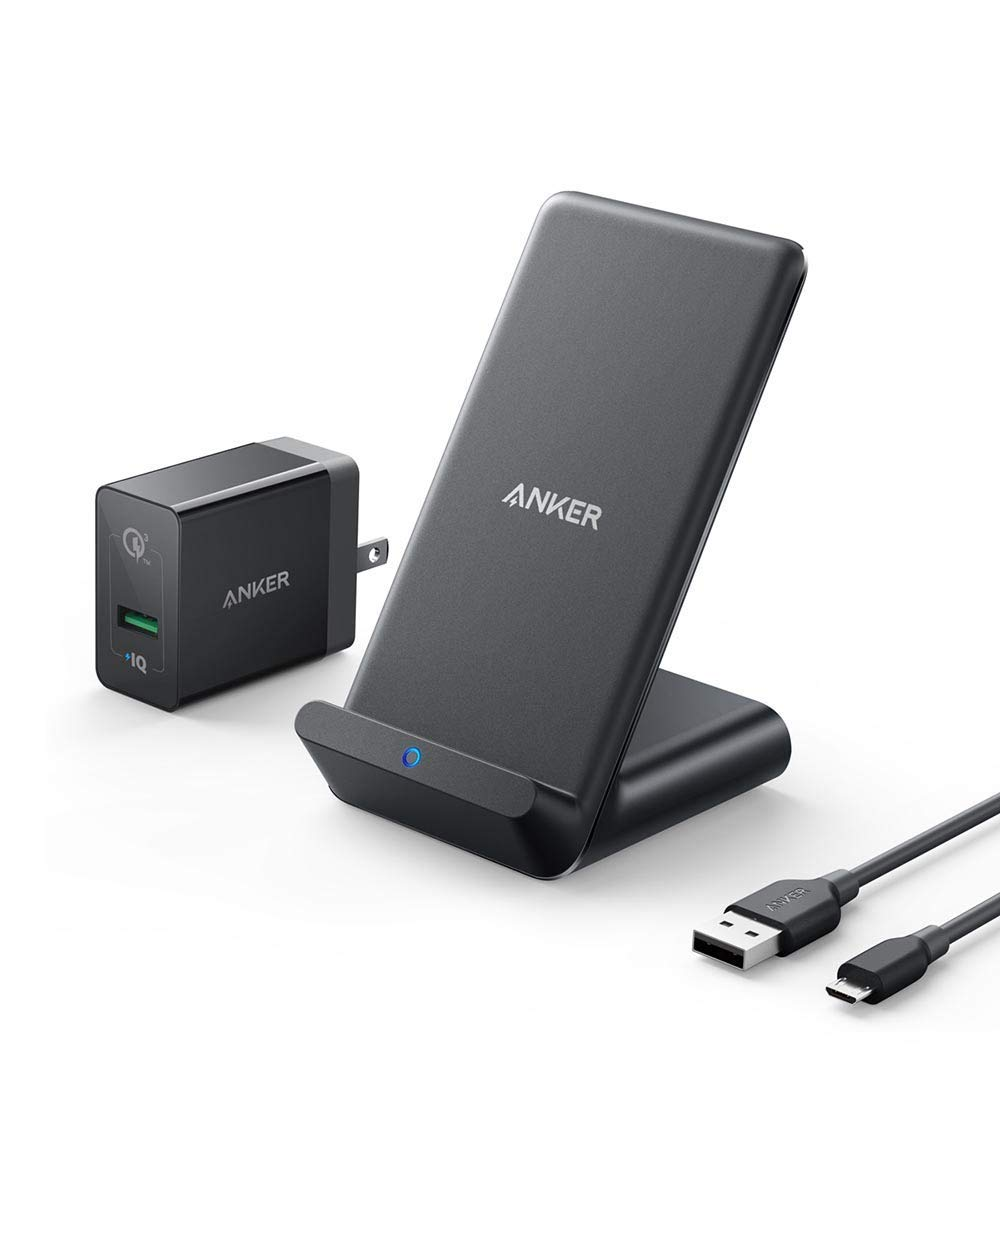 Anker PowerWave 7.5 Fast Wireless Charging Stand with Internal Cooling Fan, Qi-Certified, 7.5W Compatible iPhone XR/XS Max/XS/X/8, 10W Charges Galaxy S9/S9+/S8 (with Quick Charge Adapter) (Renewed)